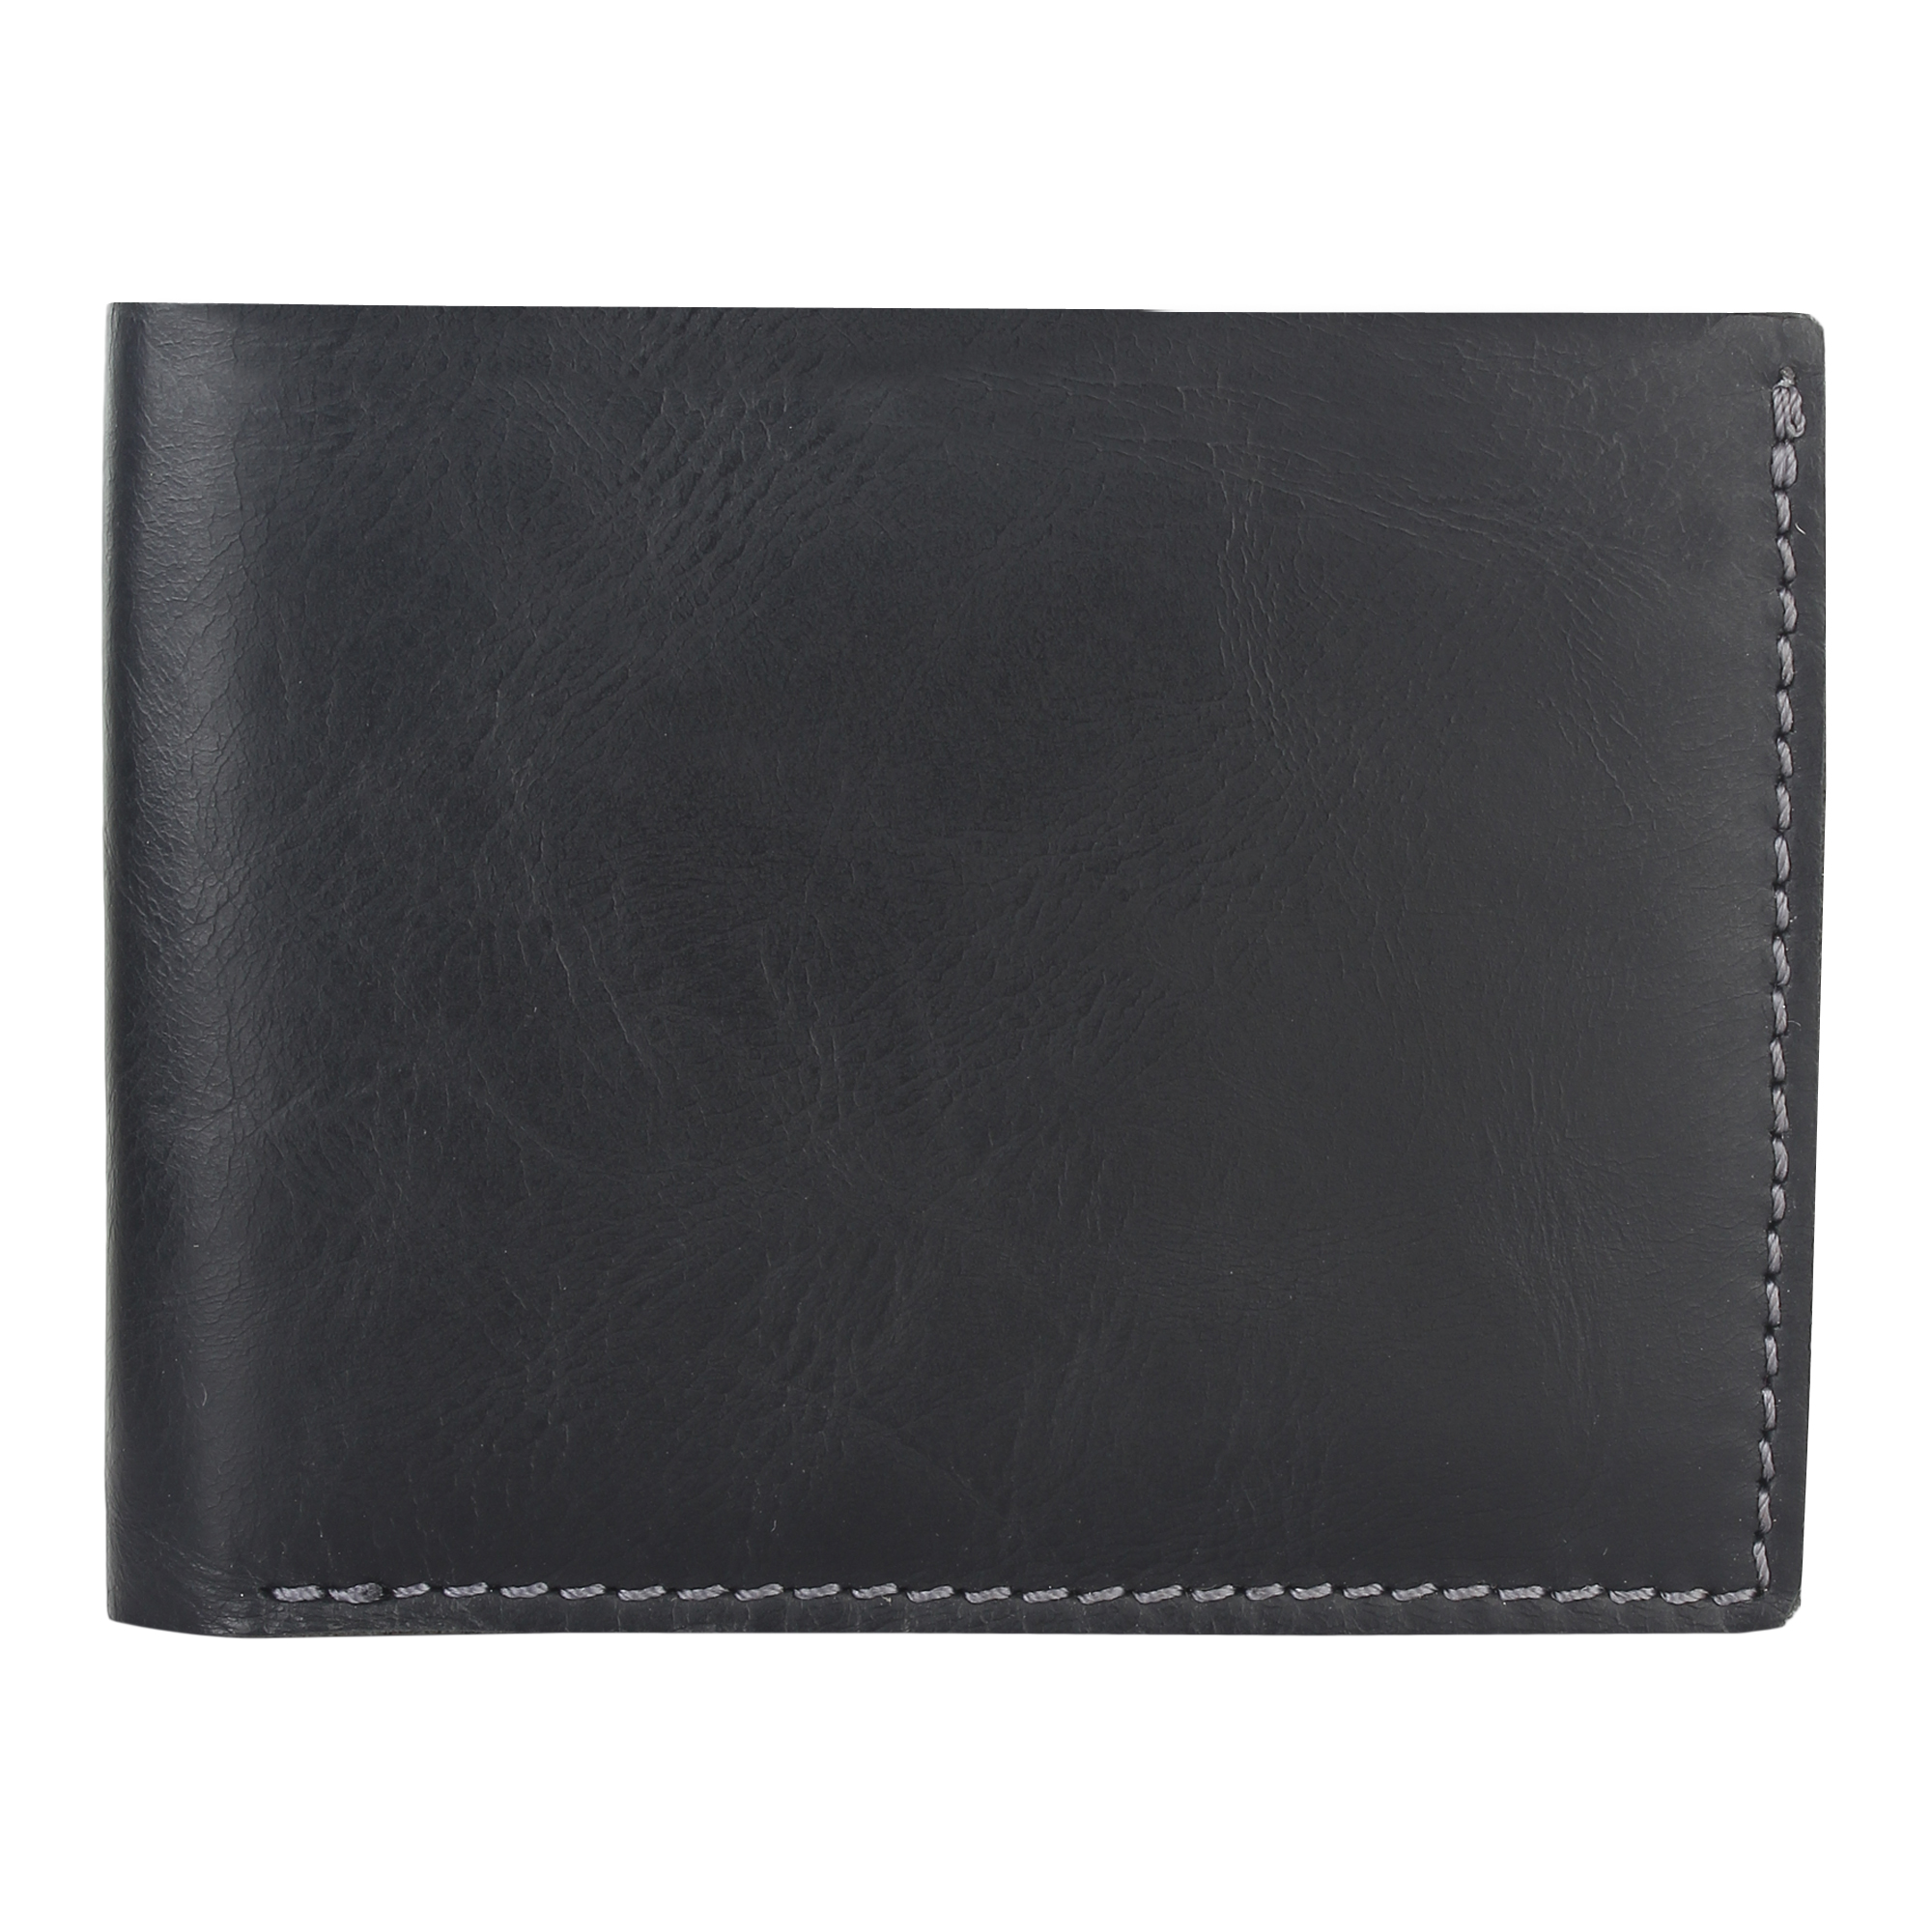 Leather Wallets Manufacturers in Iraq, Leather Wallets Suppliers in Iraq, Leather Wallets Wholesalers in Iraq, Leather Wallets Traders in Iraq